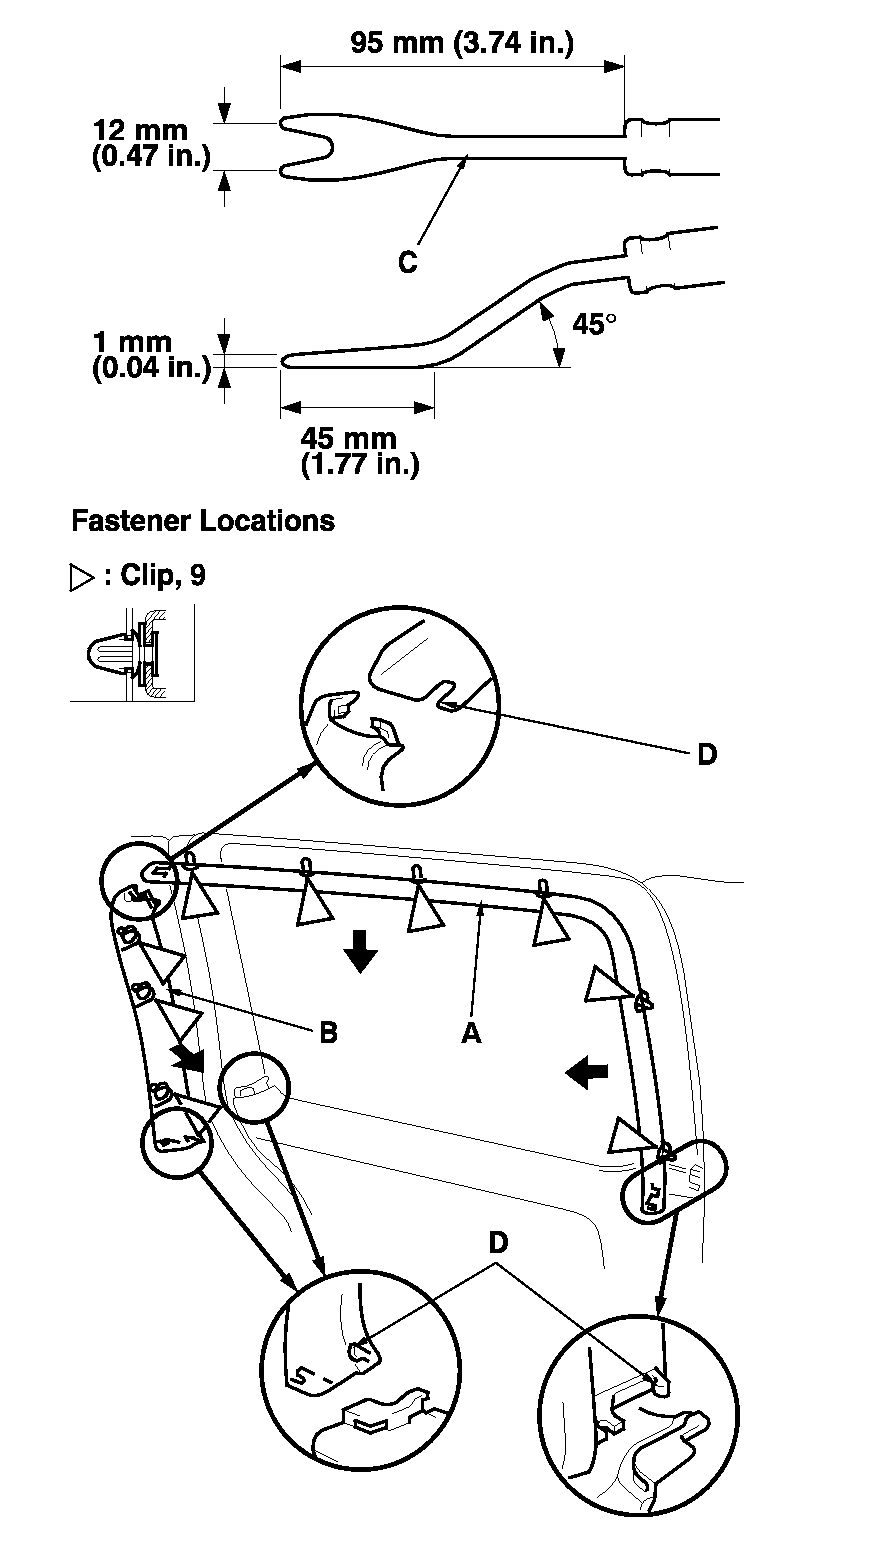 How To Ajust Headlight Beam 2002 Lincoln Continental furthermore Repair Manual Transmission Shift Solenoid 1993 Jeep Wrangler in addition How To Replace Transmission Filler Tube 1998 Saturn S Series also How To Remove Sliding Door Cable 2000 Daewoo Nubira together with How To Fix 1989 Saab 900 Heater Blend. on 1998 ford windstar blue book